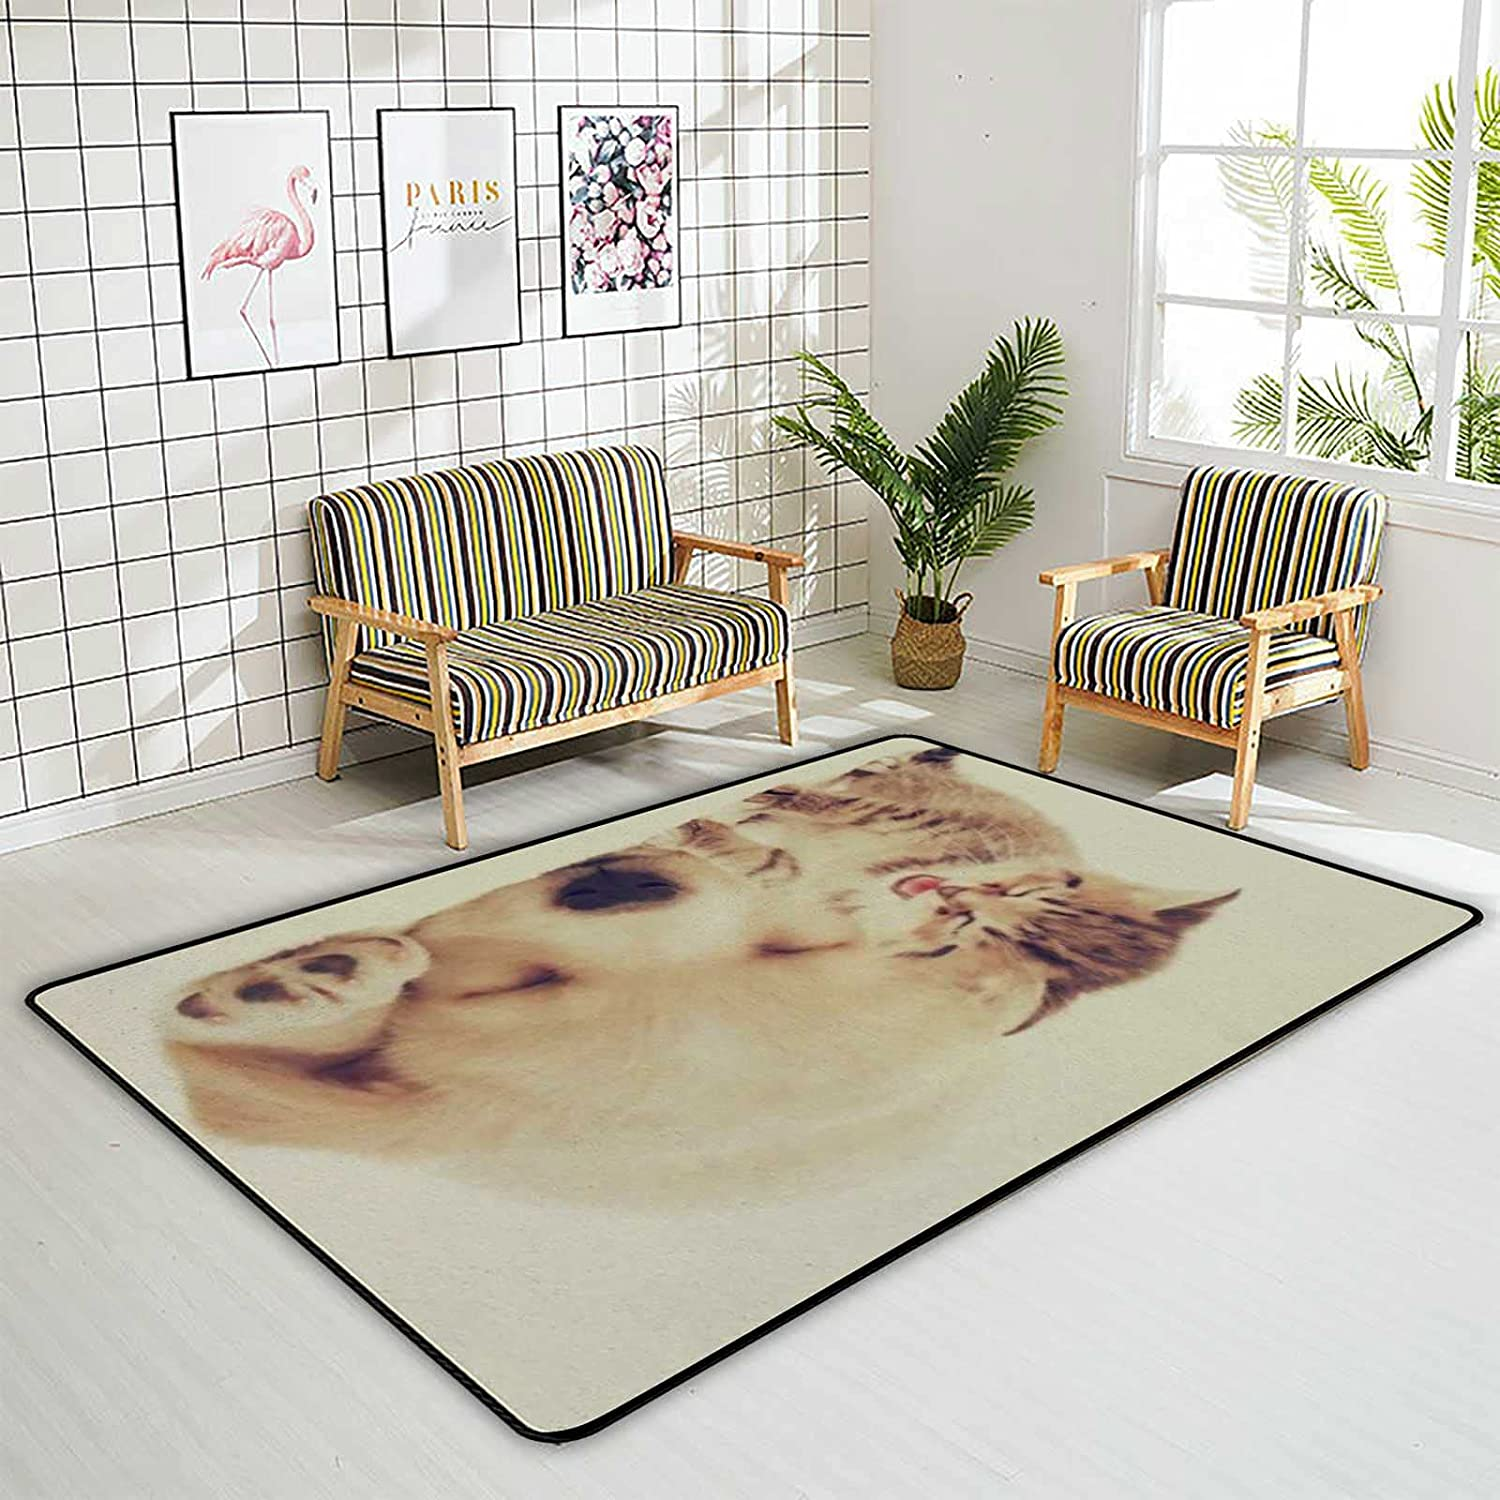 Kuizee Area Rug Cute Baby Cat OFFicial Rectangle Oversize Dog All items in the store Doorm Sweet